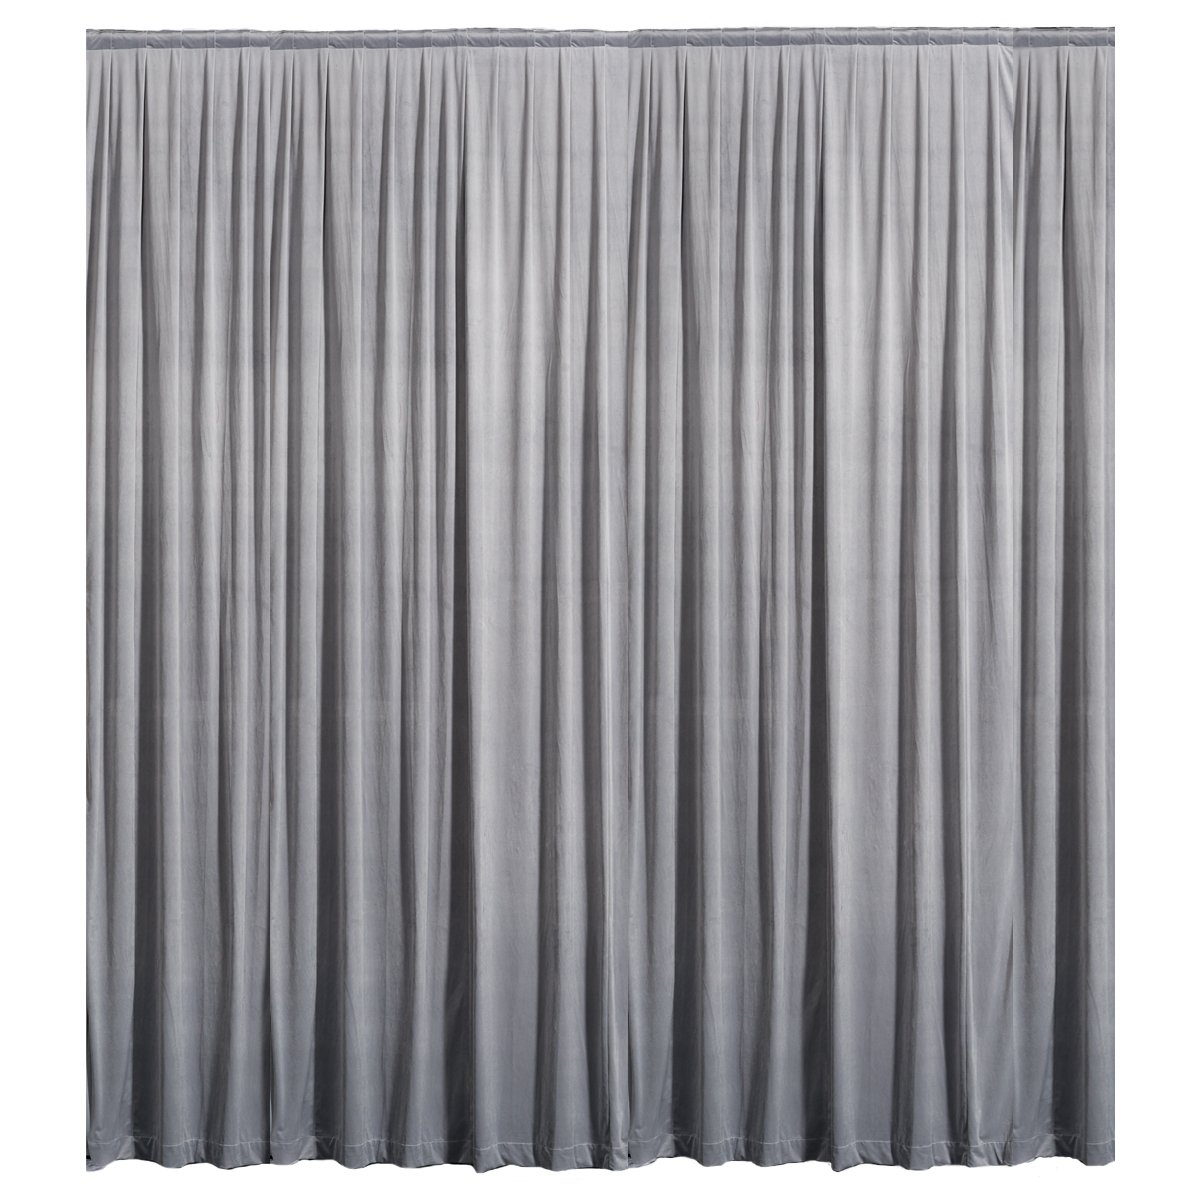 Black and white stage curtain - Carbonight Plus